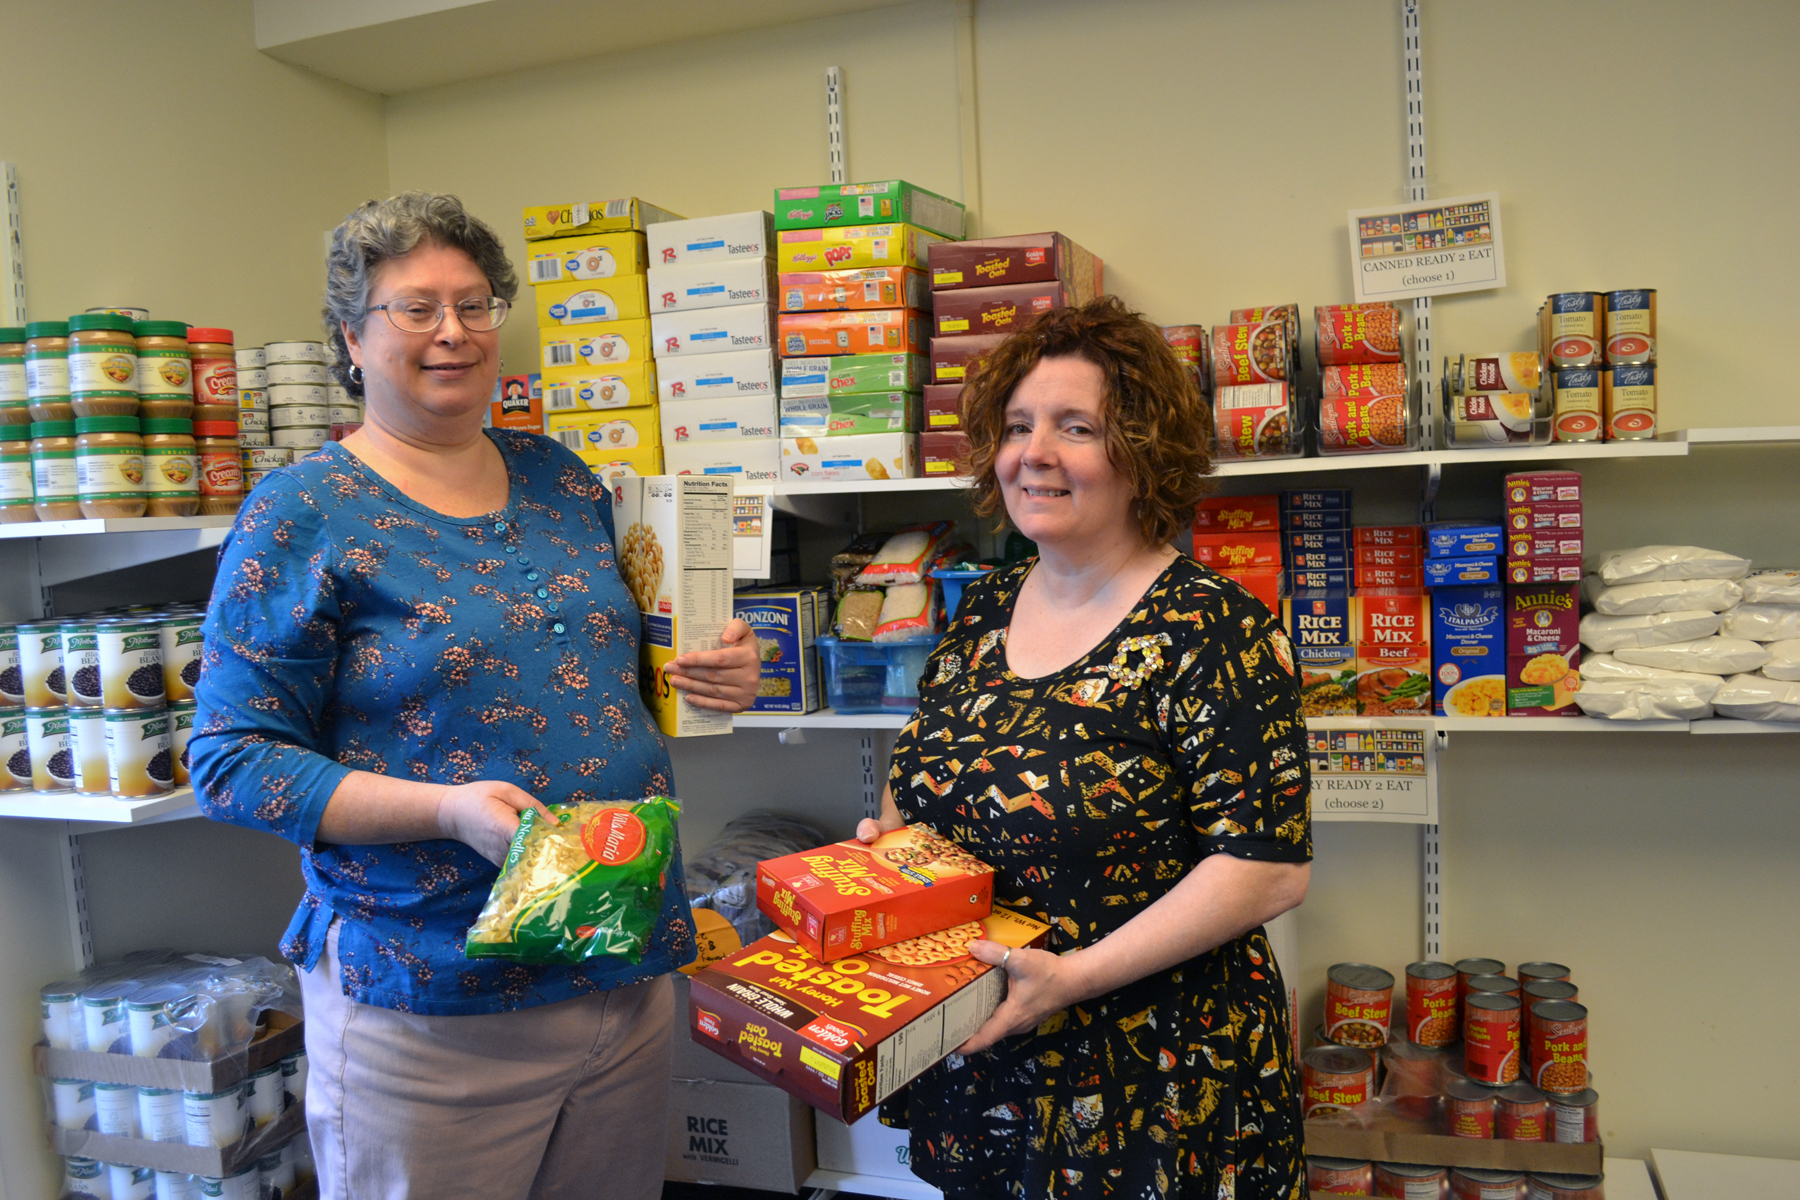 SUNY Schenectady Students Benefit from Access to Food Pantry on Campus